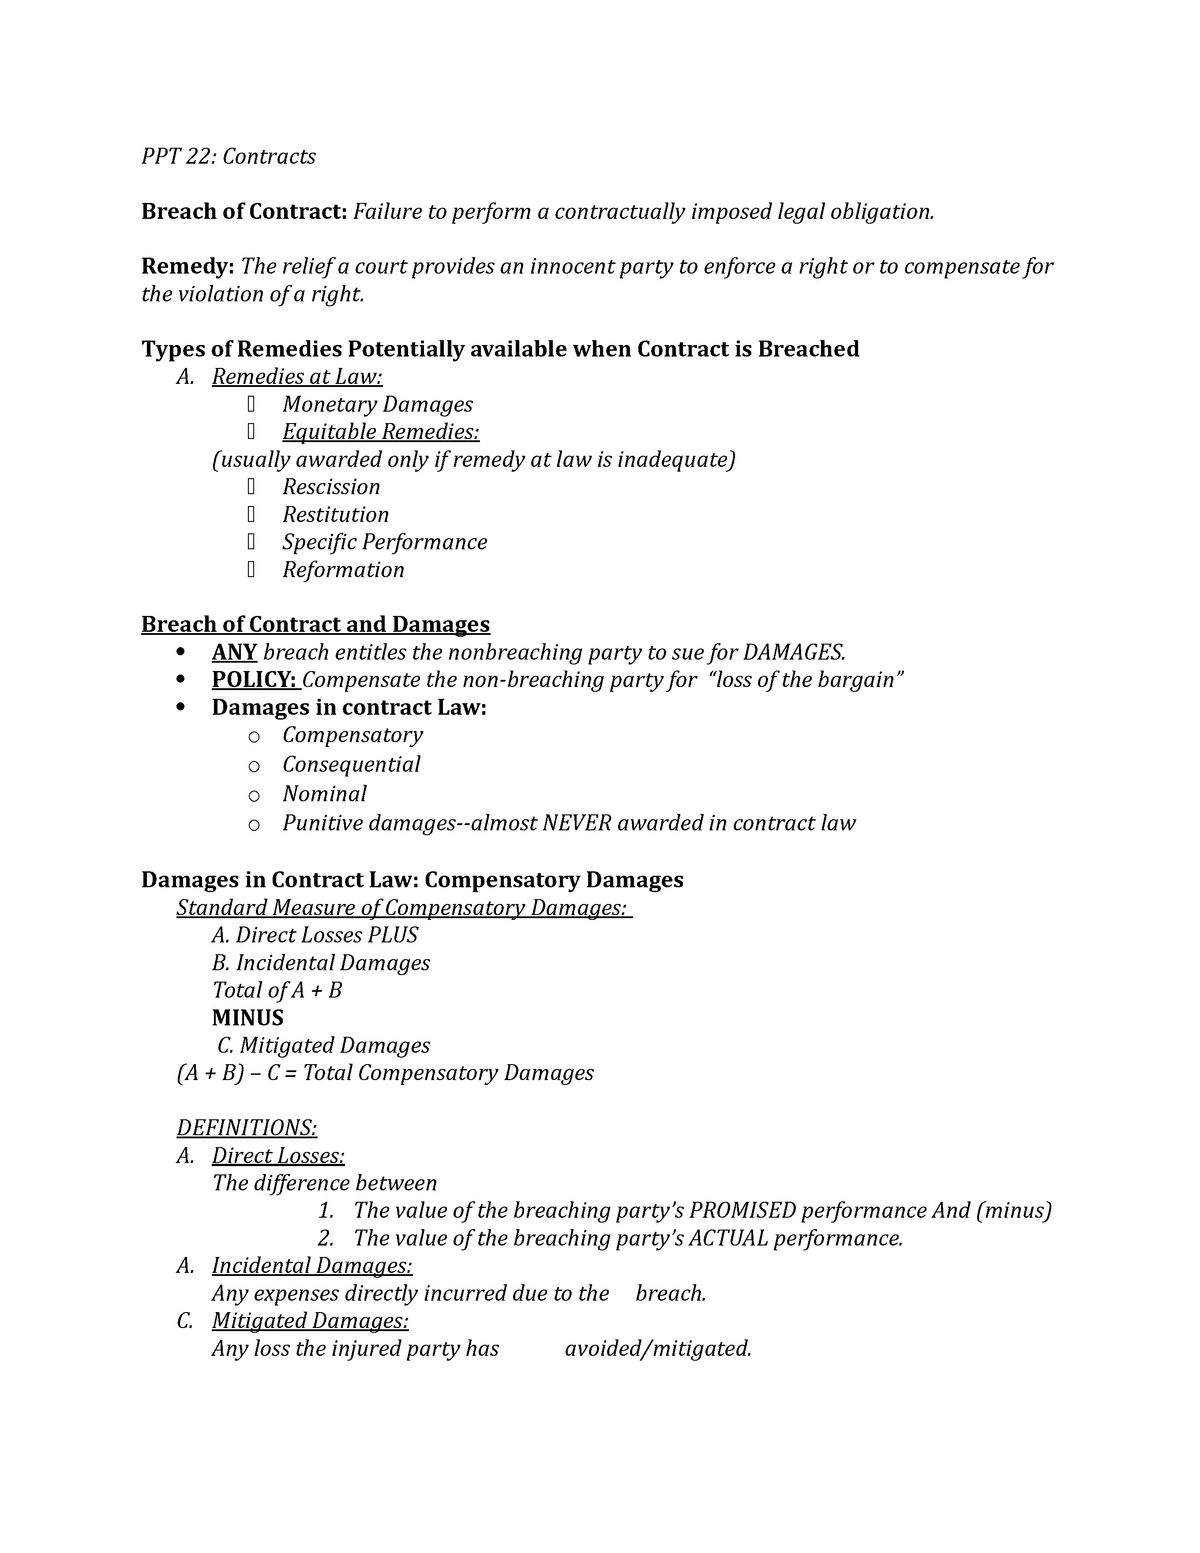 BLAW 341 Powerpoint 22 Notes Exam 2 - B LAW 341 - Penn State